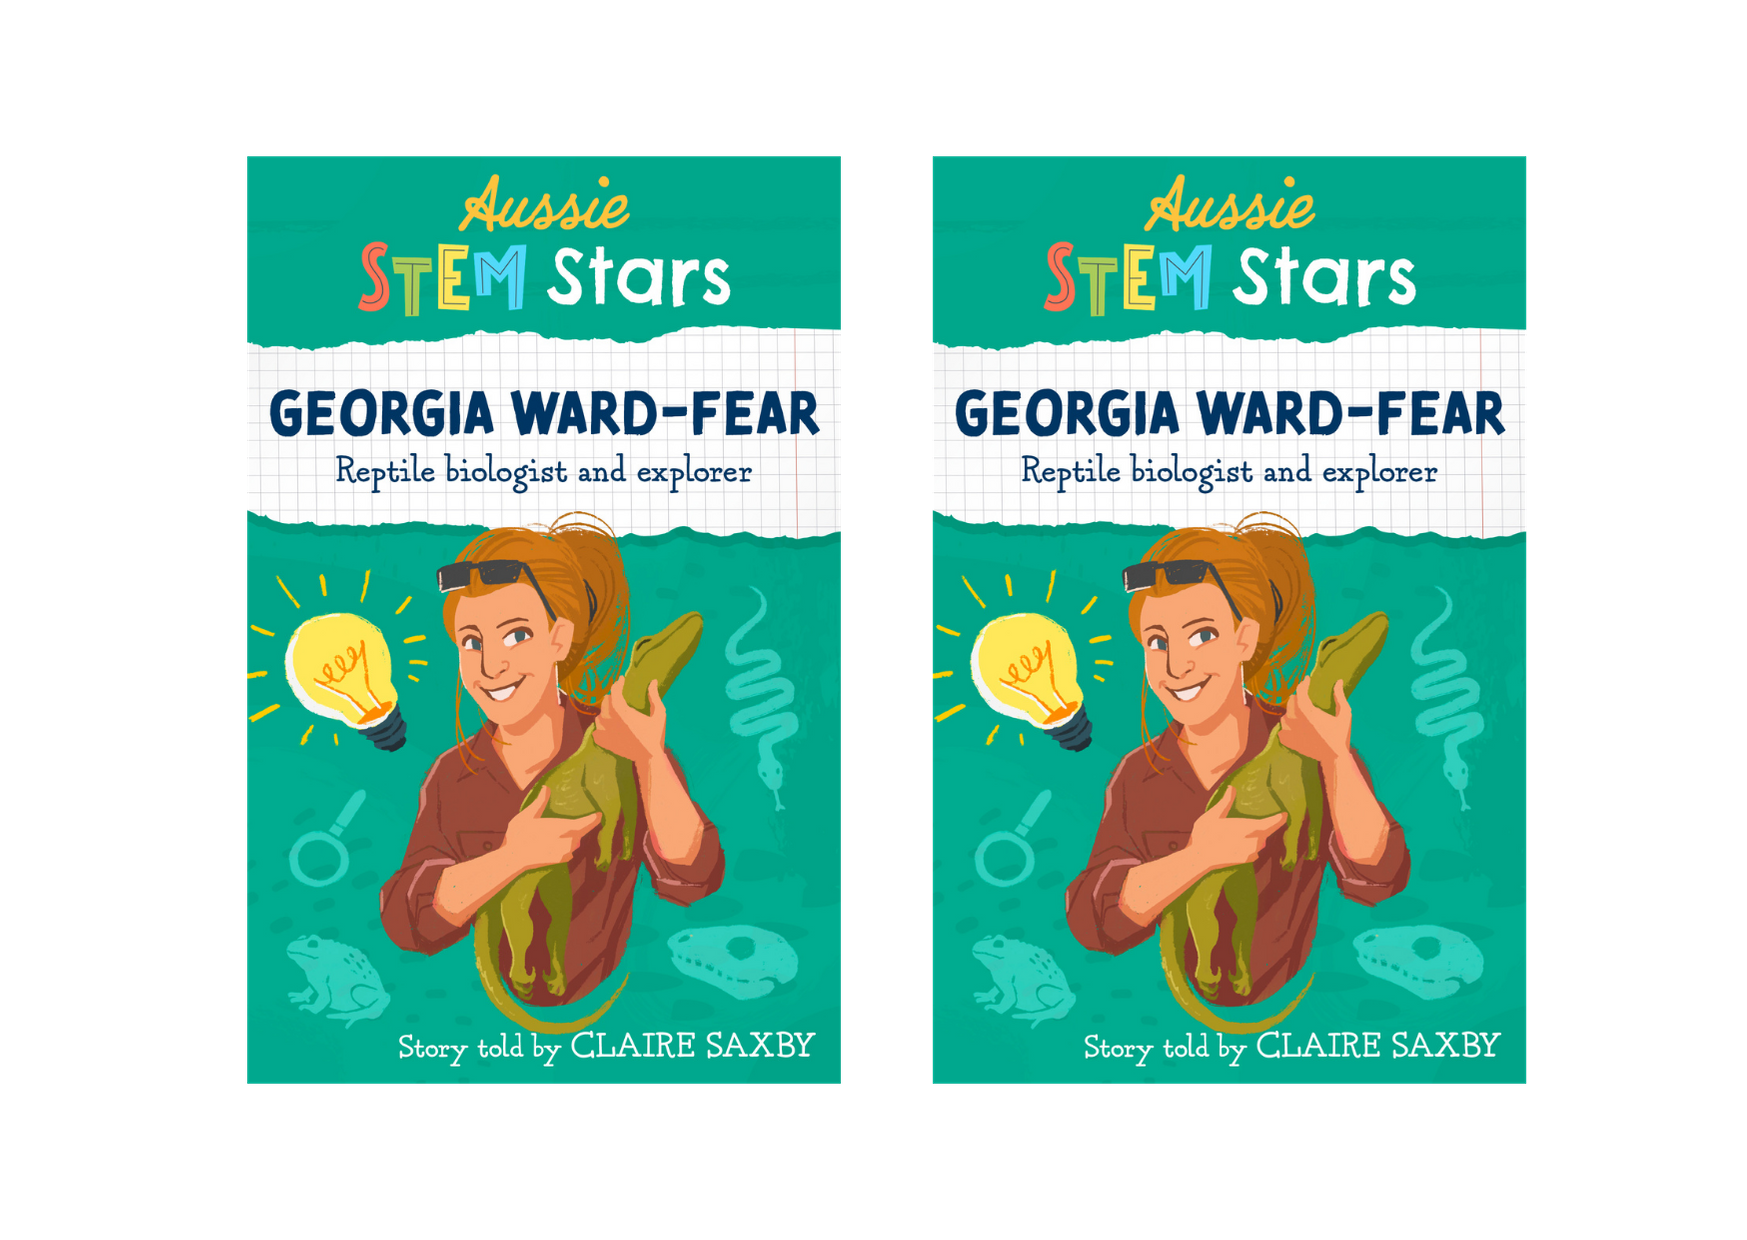 Aussie Stem Star Georgia Ward-Fear